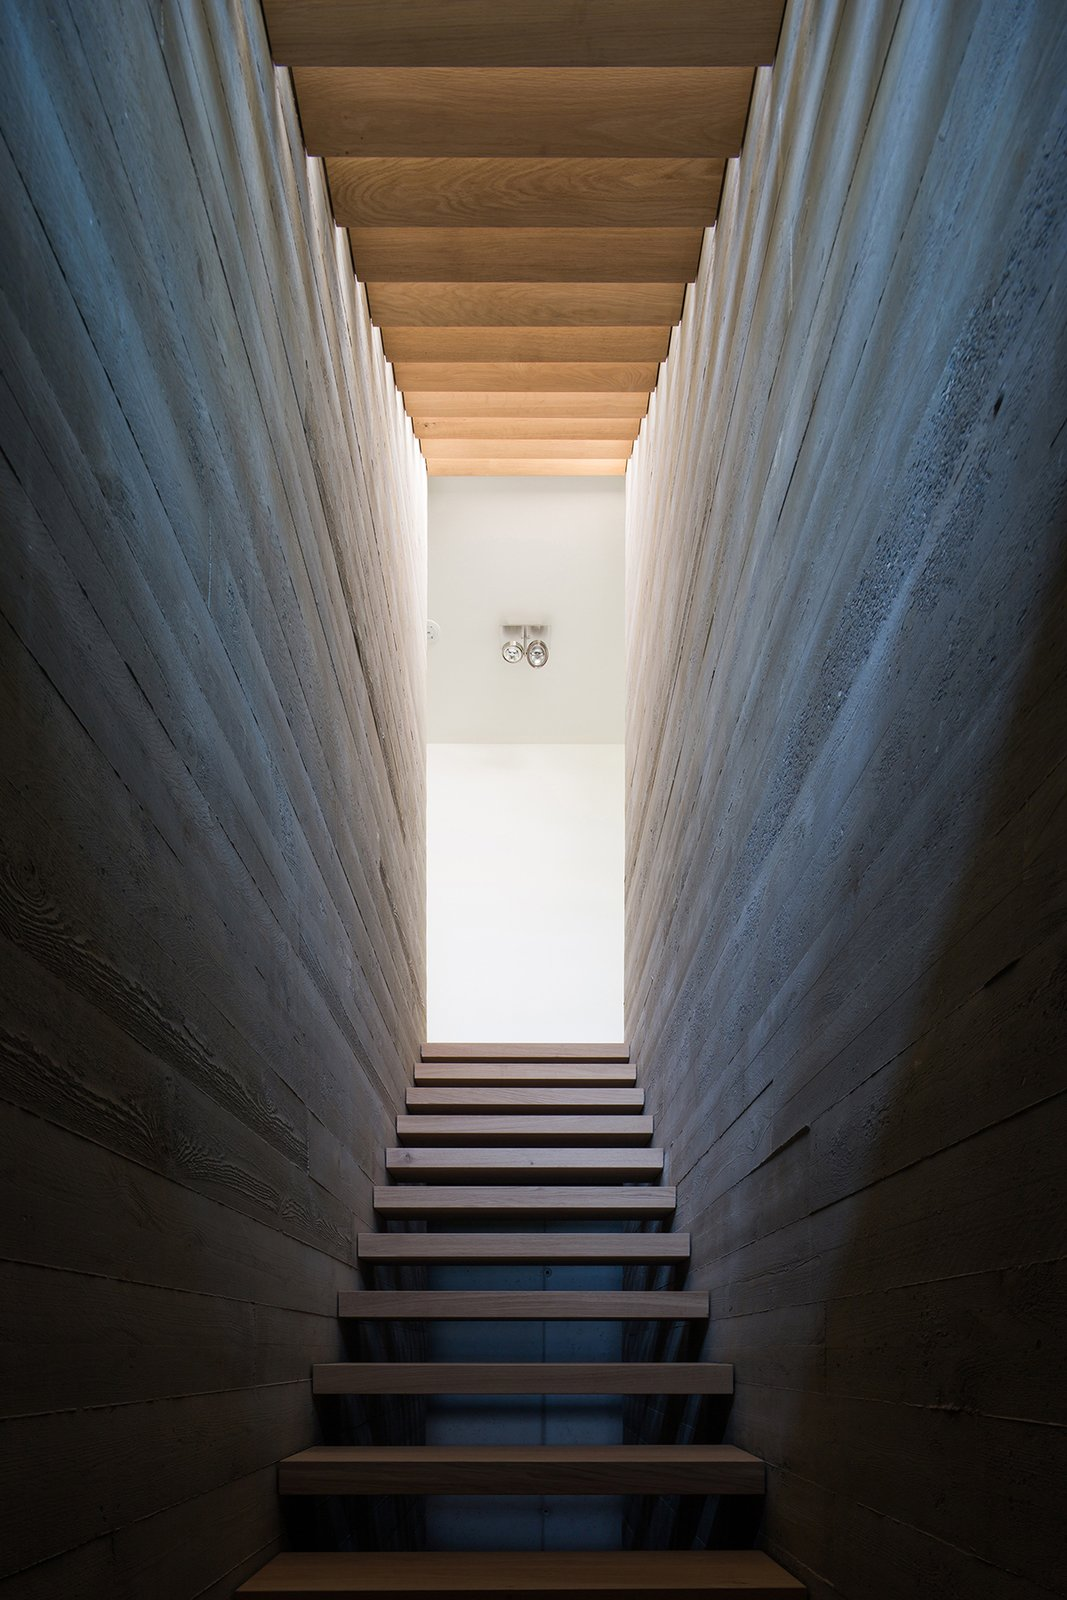 Staircase and Wood Tread Villa H | oak wooden stairs between raw concrete walls  Photos from Villa H by BERG + KLEIN